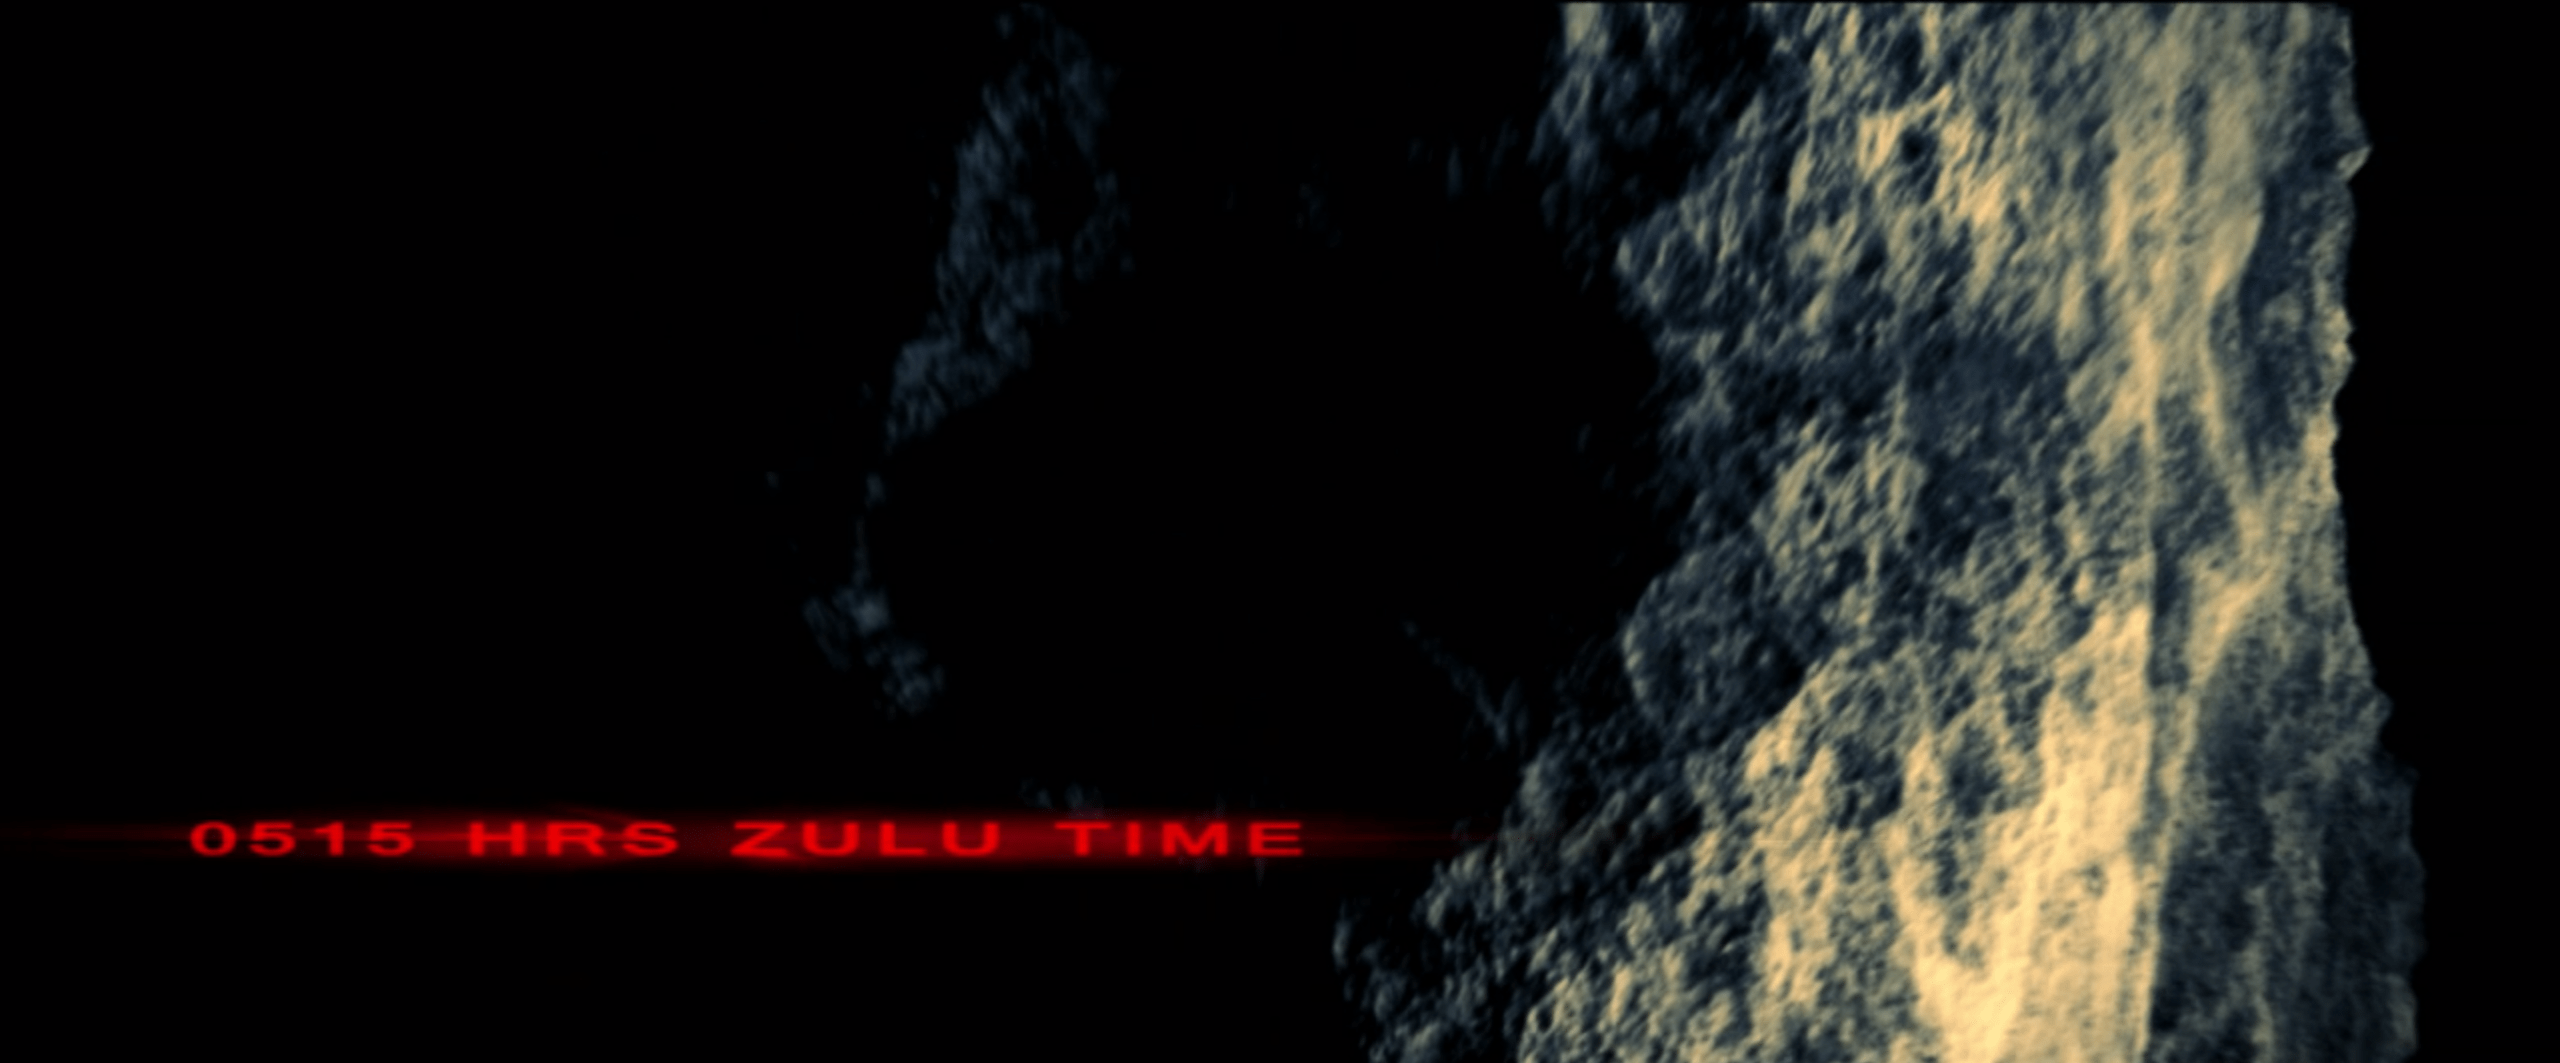 Close-up of asteroid with text saying 0515 HRS ZULU TIME